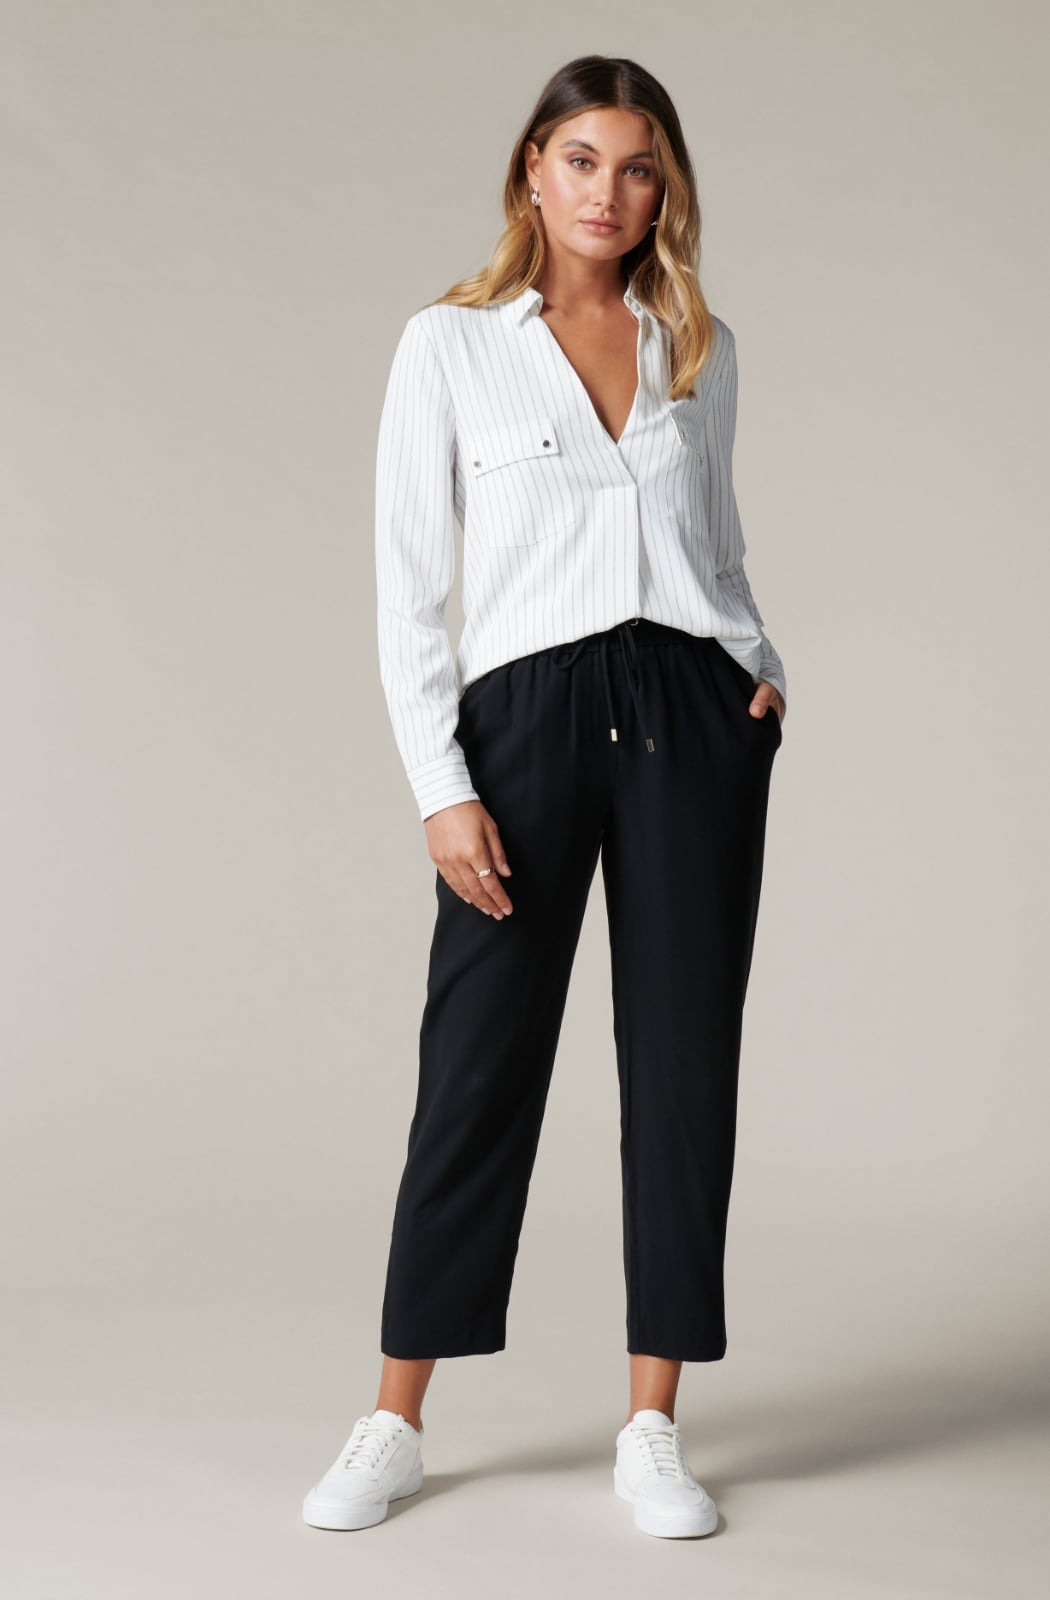 Ever New New Women's Fashion Clothing